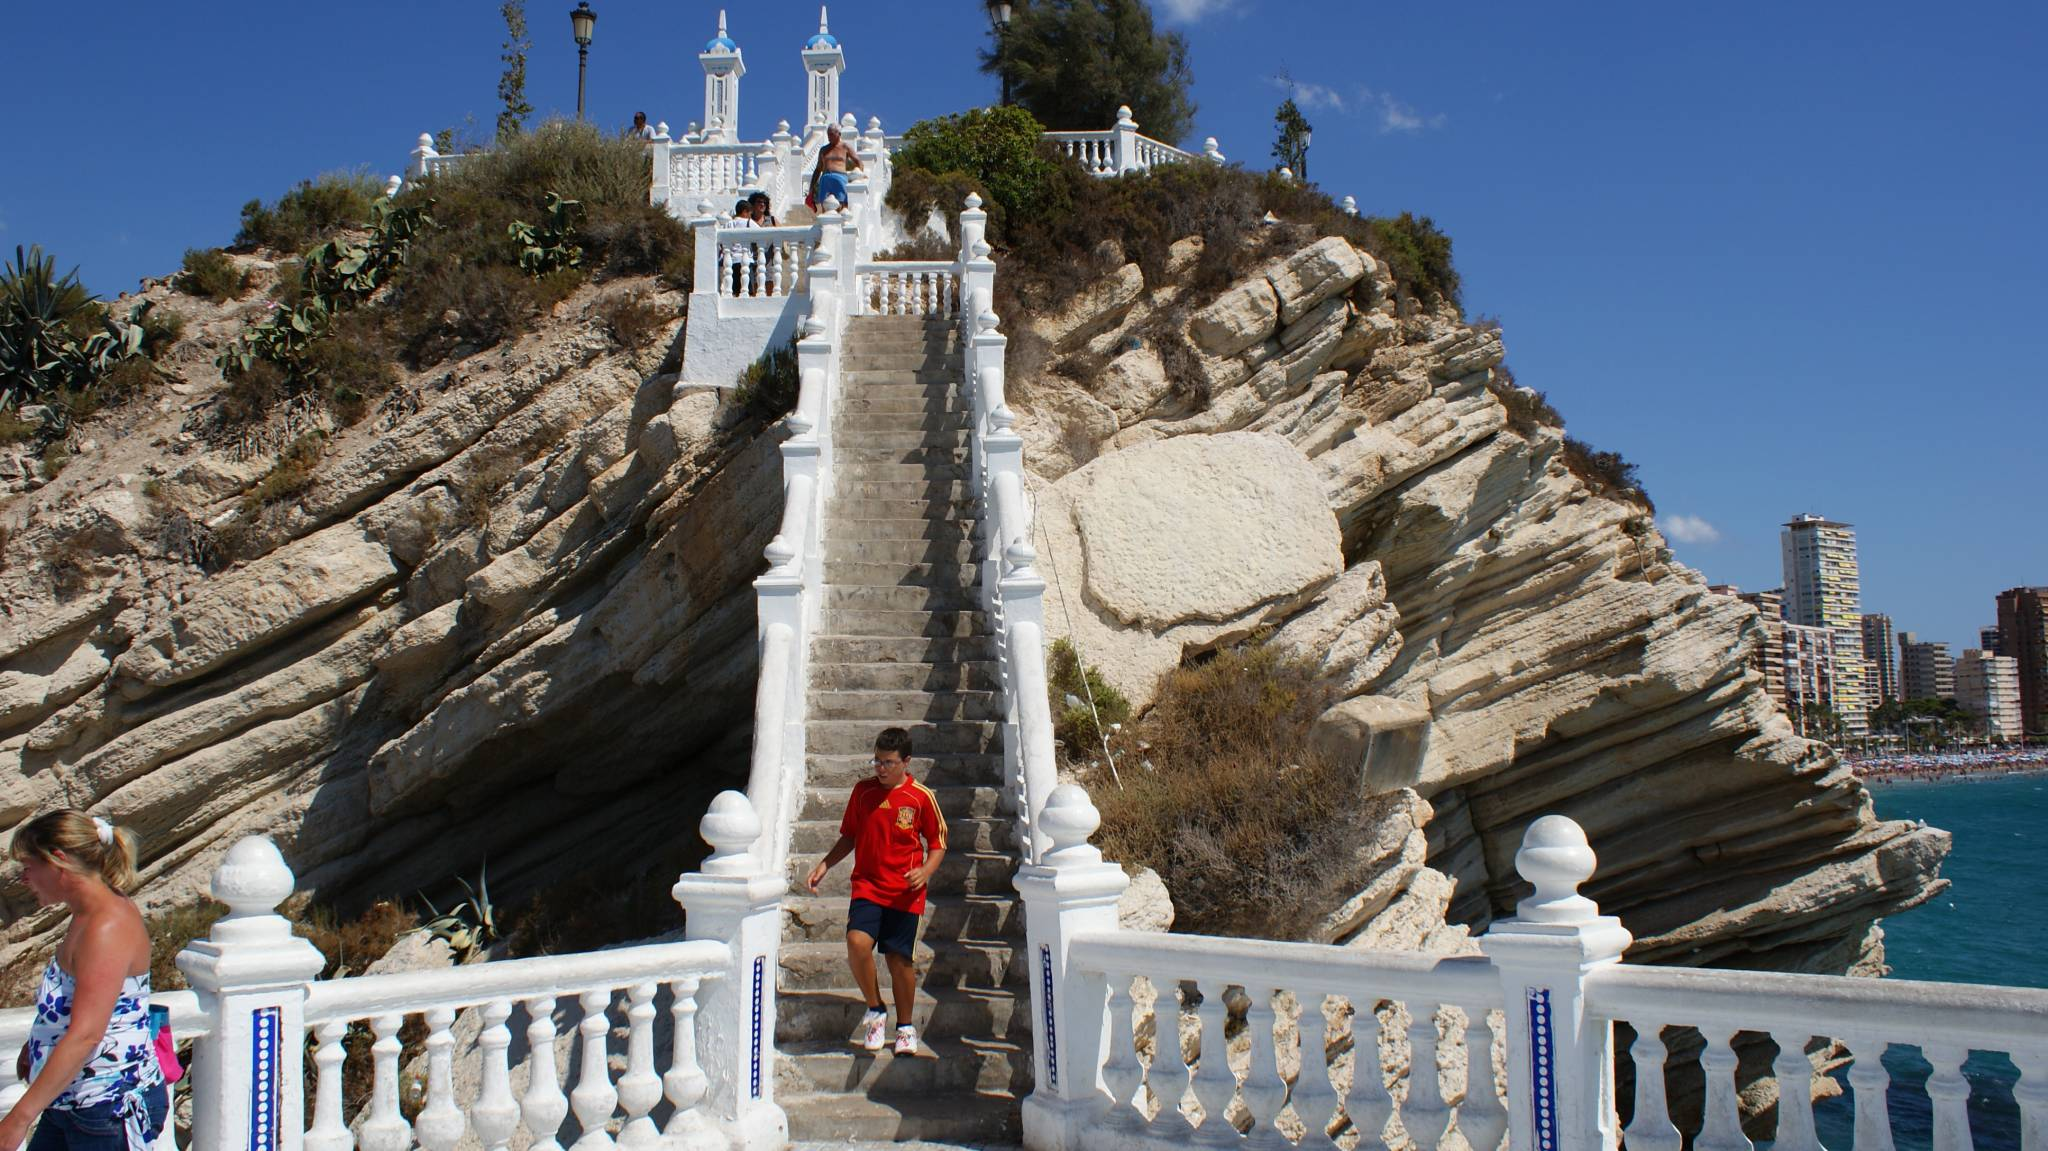 Stairs of the viewpoint between beaches of Benidorm